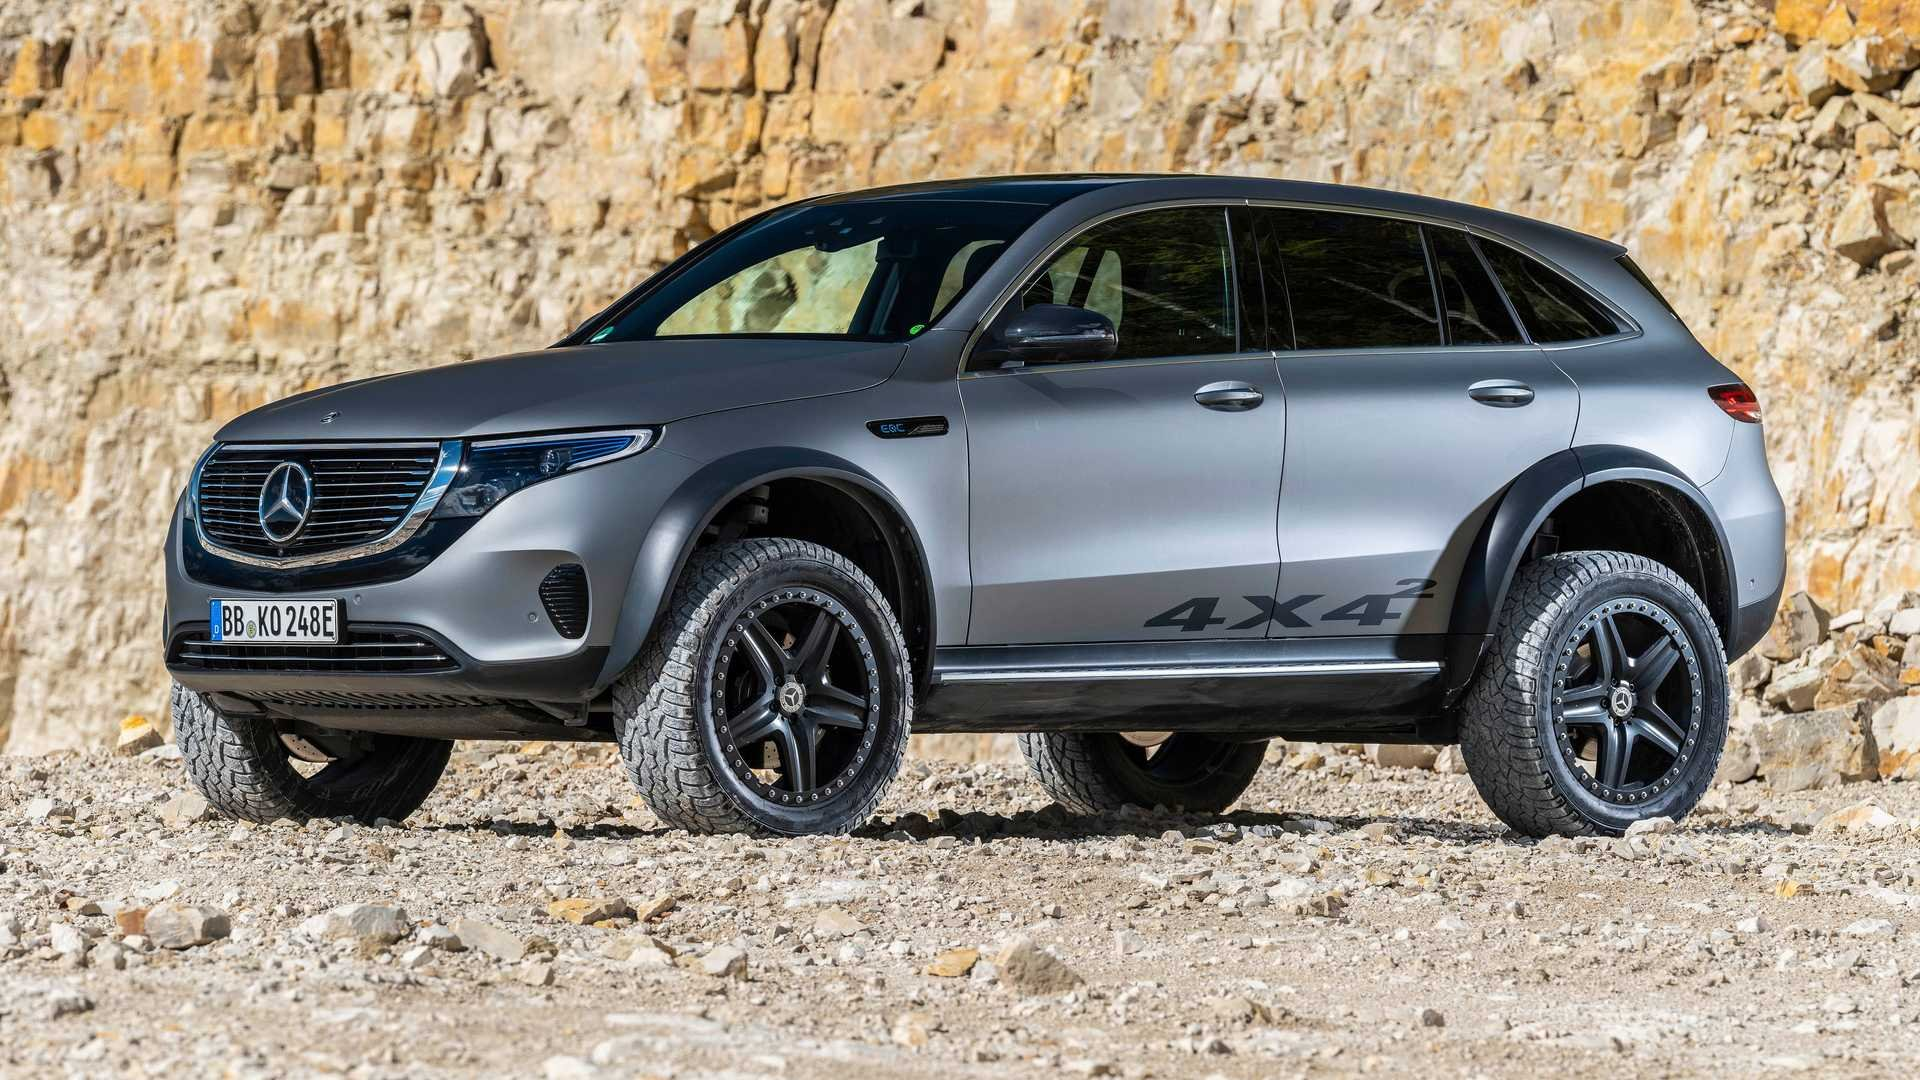 Mercedes EQC 4x4² Stands Tall With Portal Axles And Chunky Tires